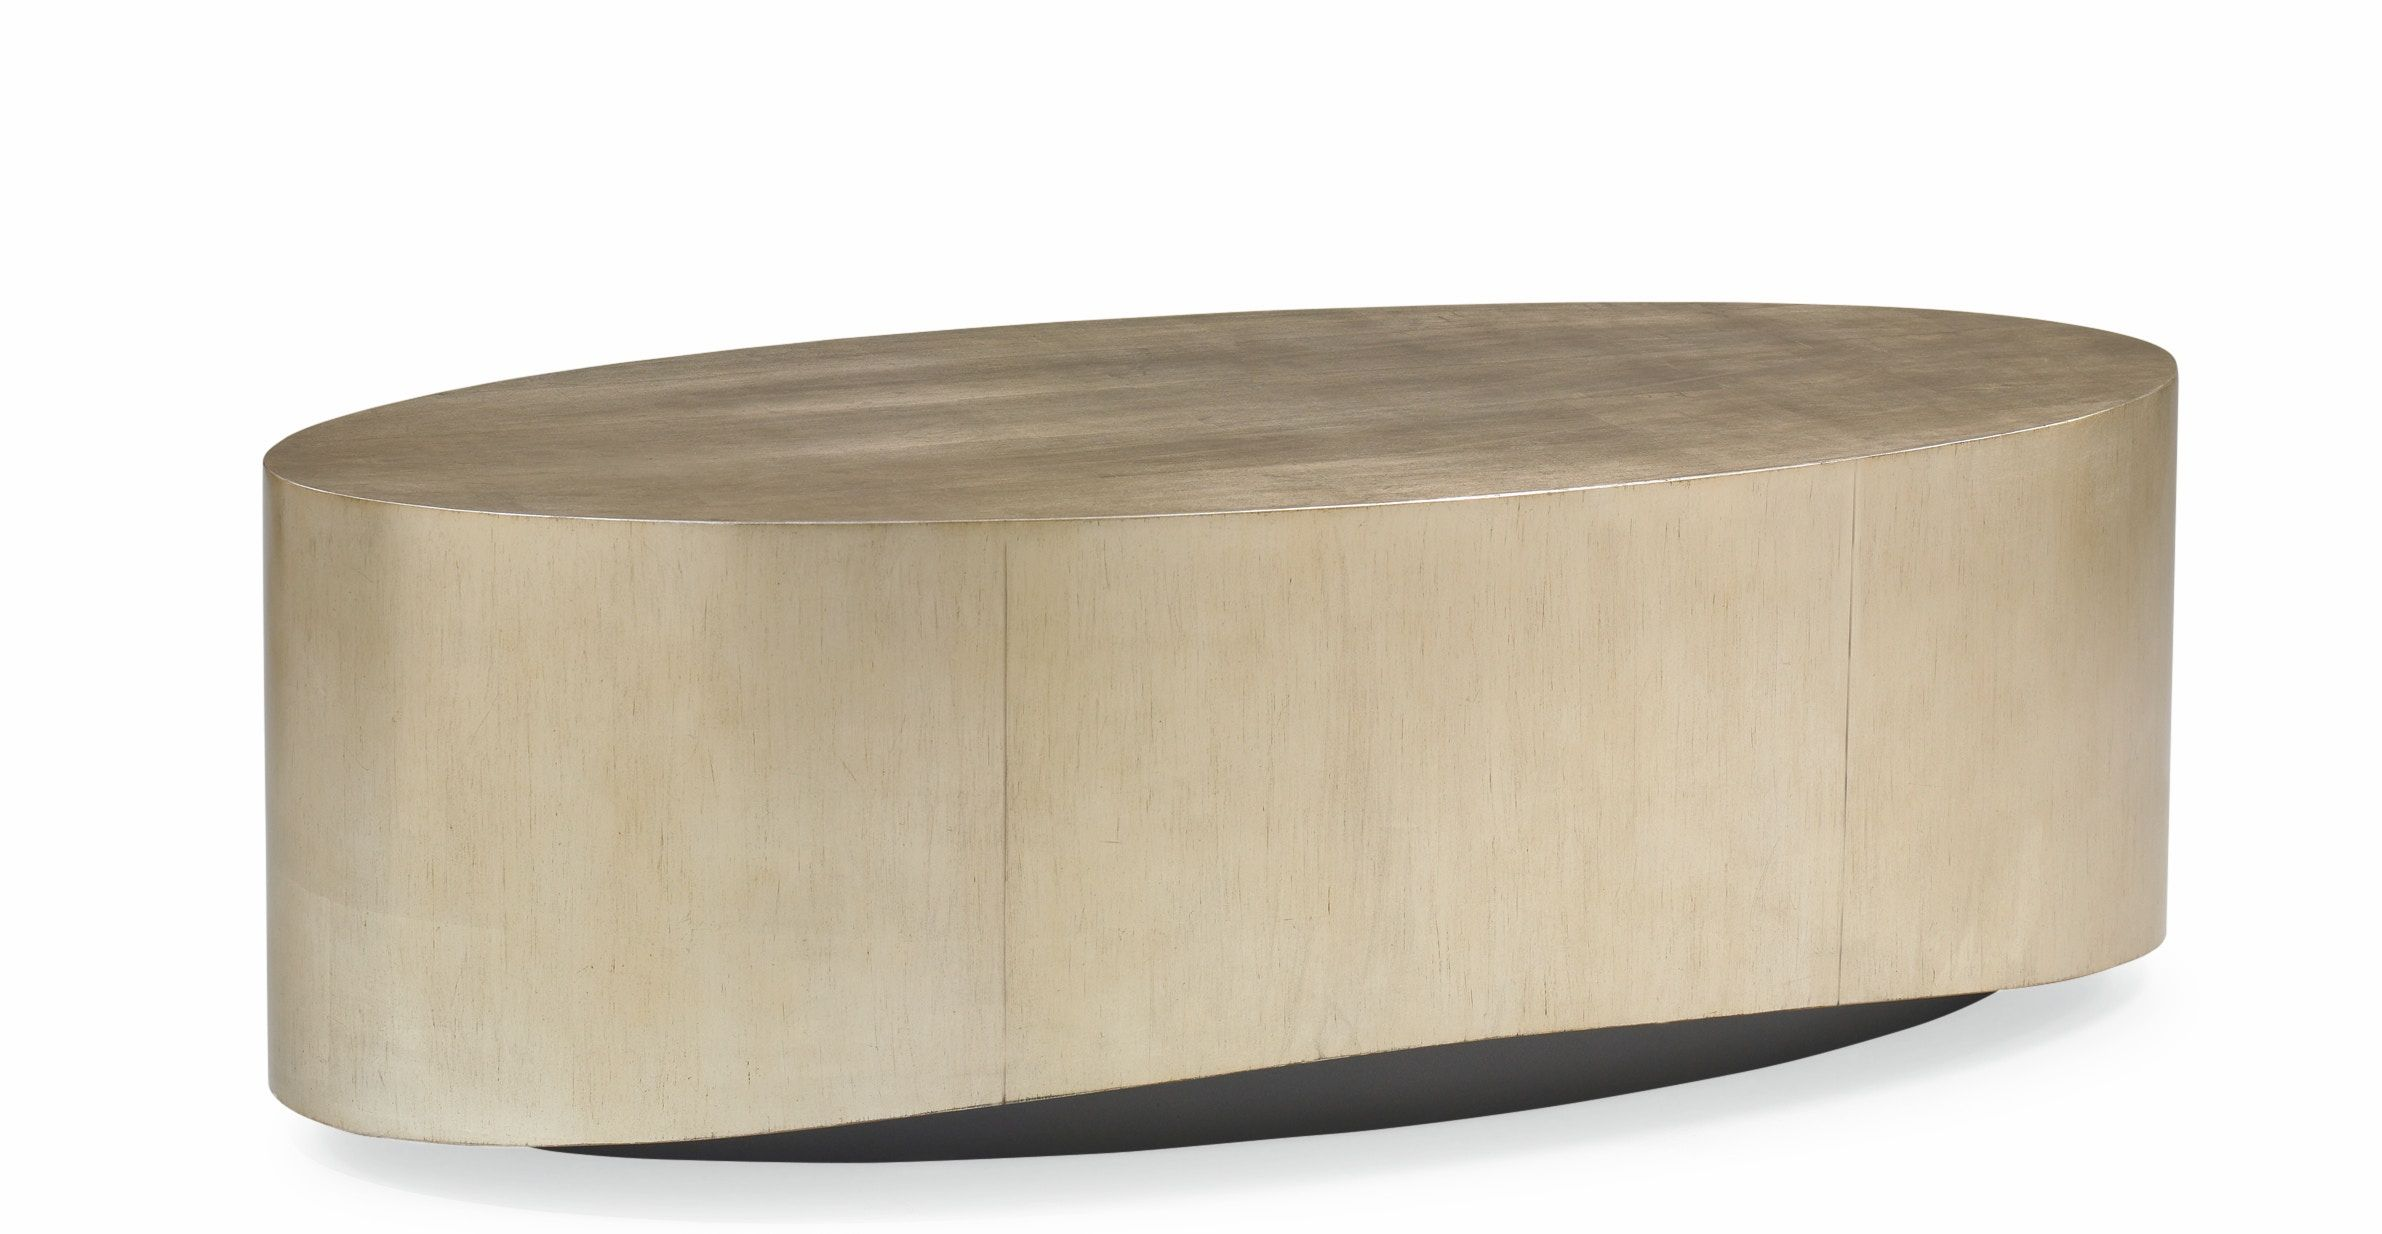 Not Only Does The Oval Shape Encourage Easy Movement And Flow Around A Seating Area This Clever Cocktail Table Adds S Caracole Caracole Furniture Coffee Table [ 1234 x 2382 Pixel ]